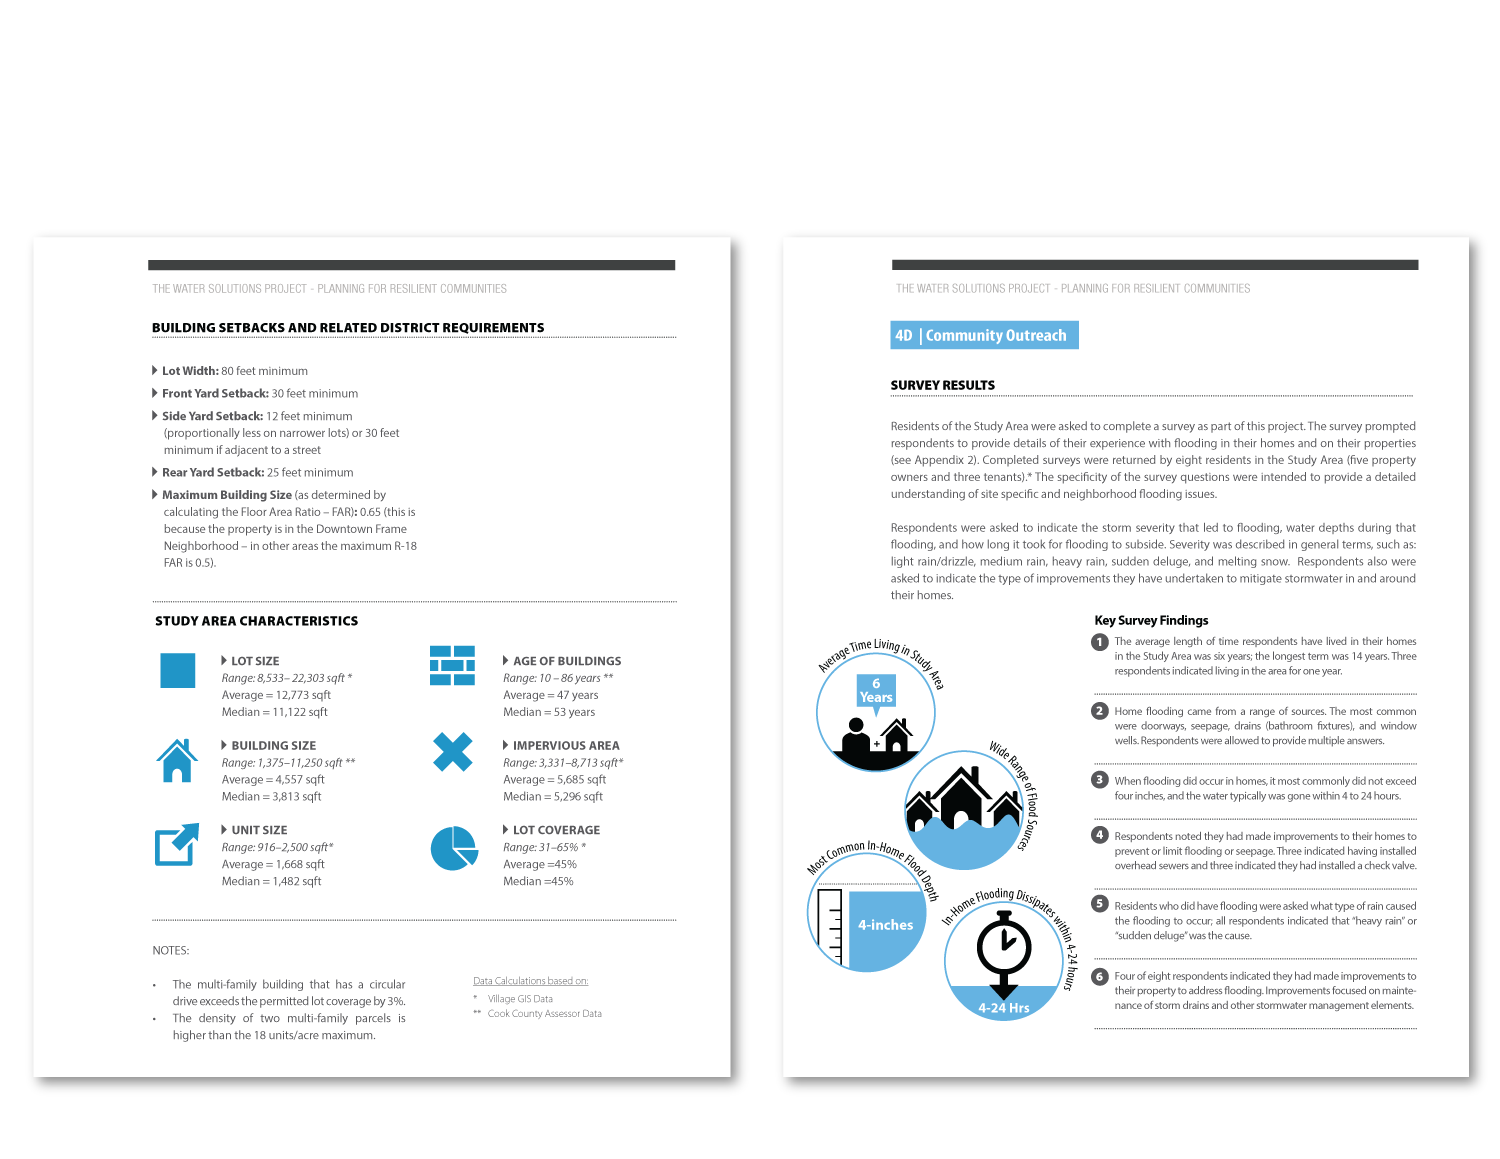 Sample pages from report